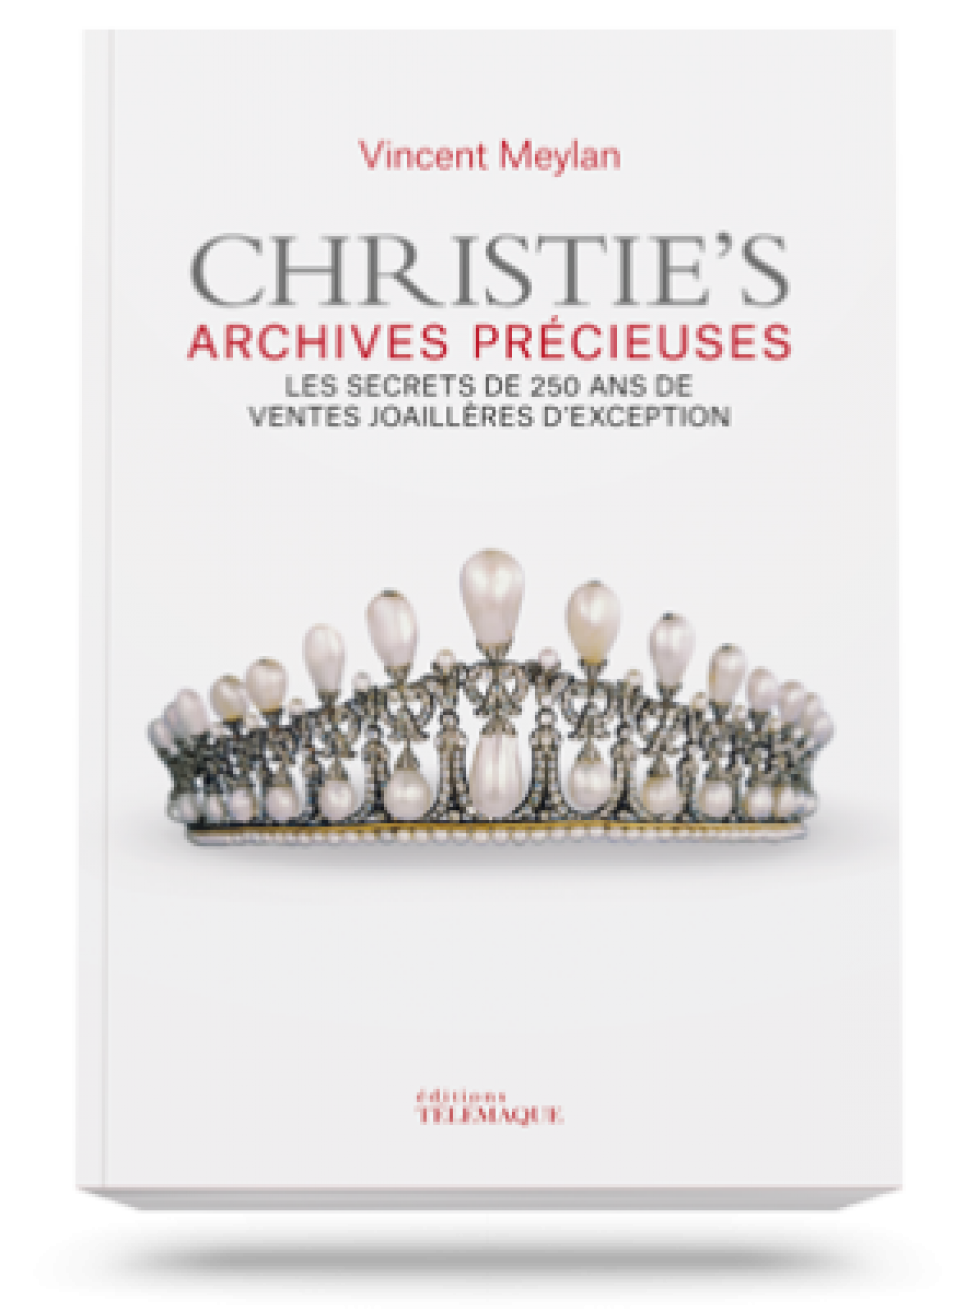 pers-christies-archives-precieuses-cover-def-298x400